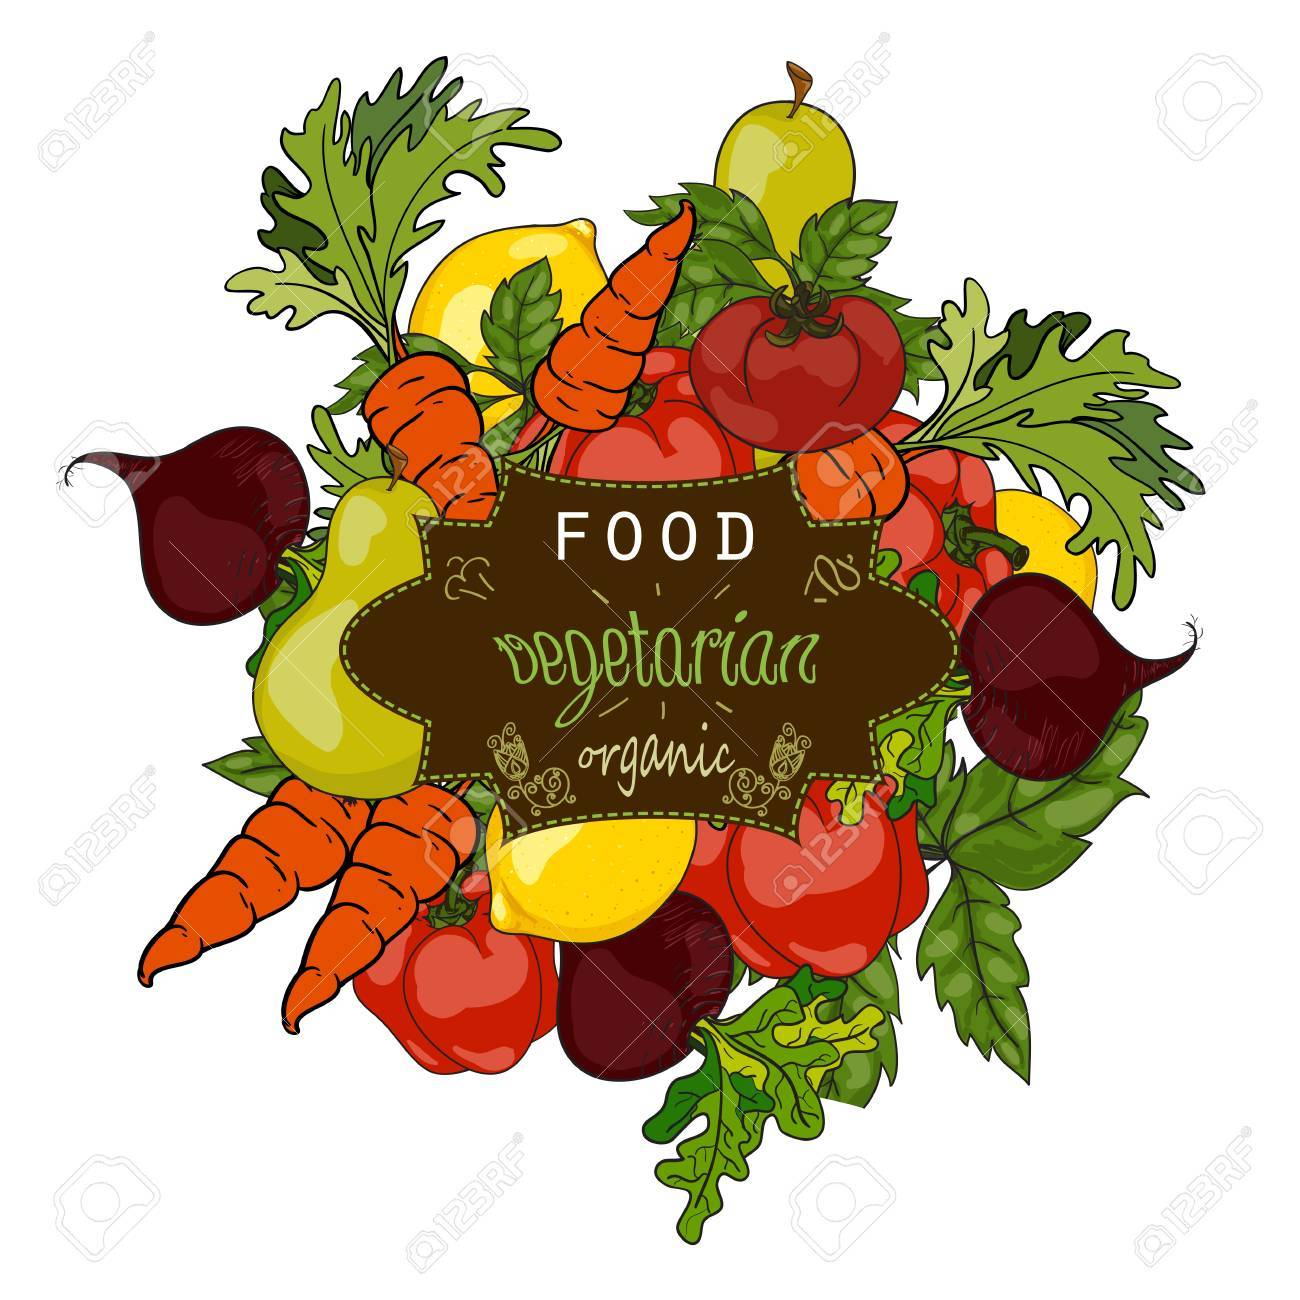 Set of fresh fruits and vegetables with a label of a healthy diet. Vector hand drawn illustration. The concept of a vegetarian menu, farm food, healthy, natural and organic food. - 62248999